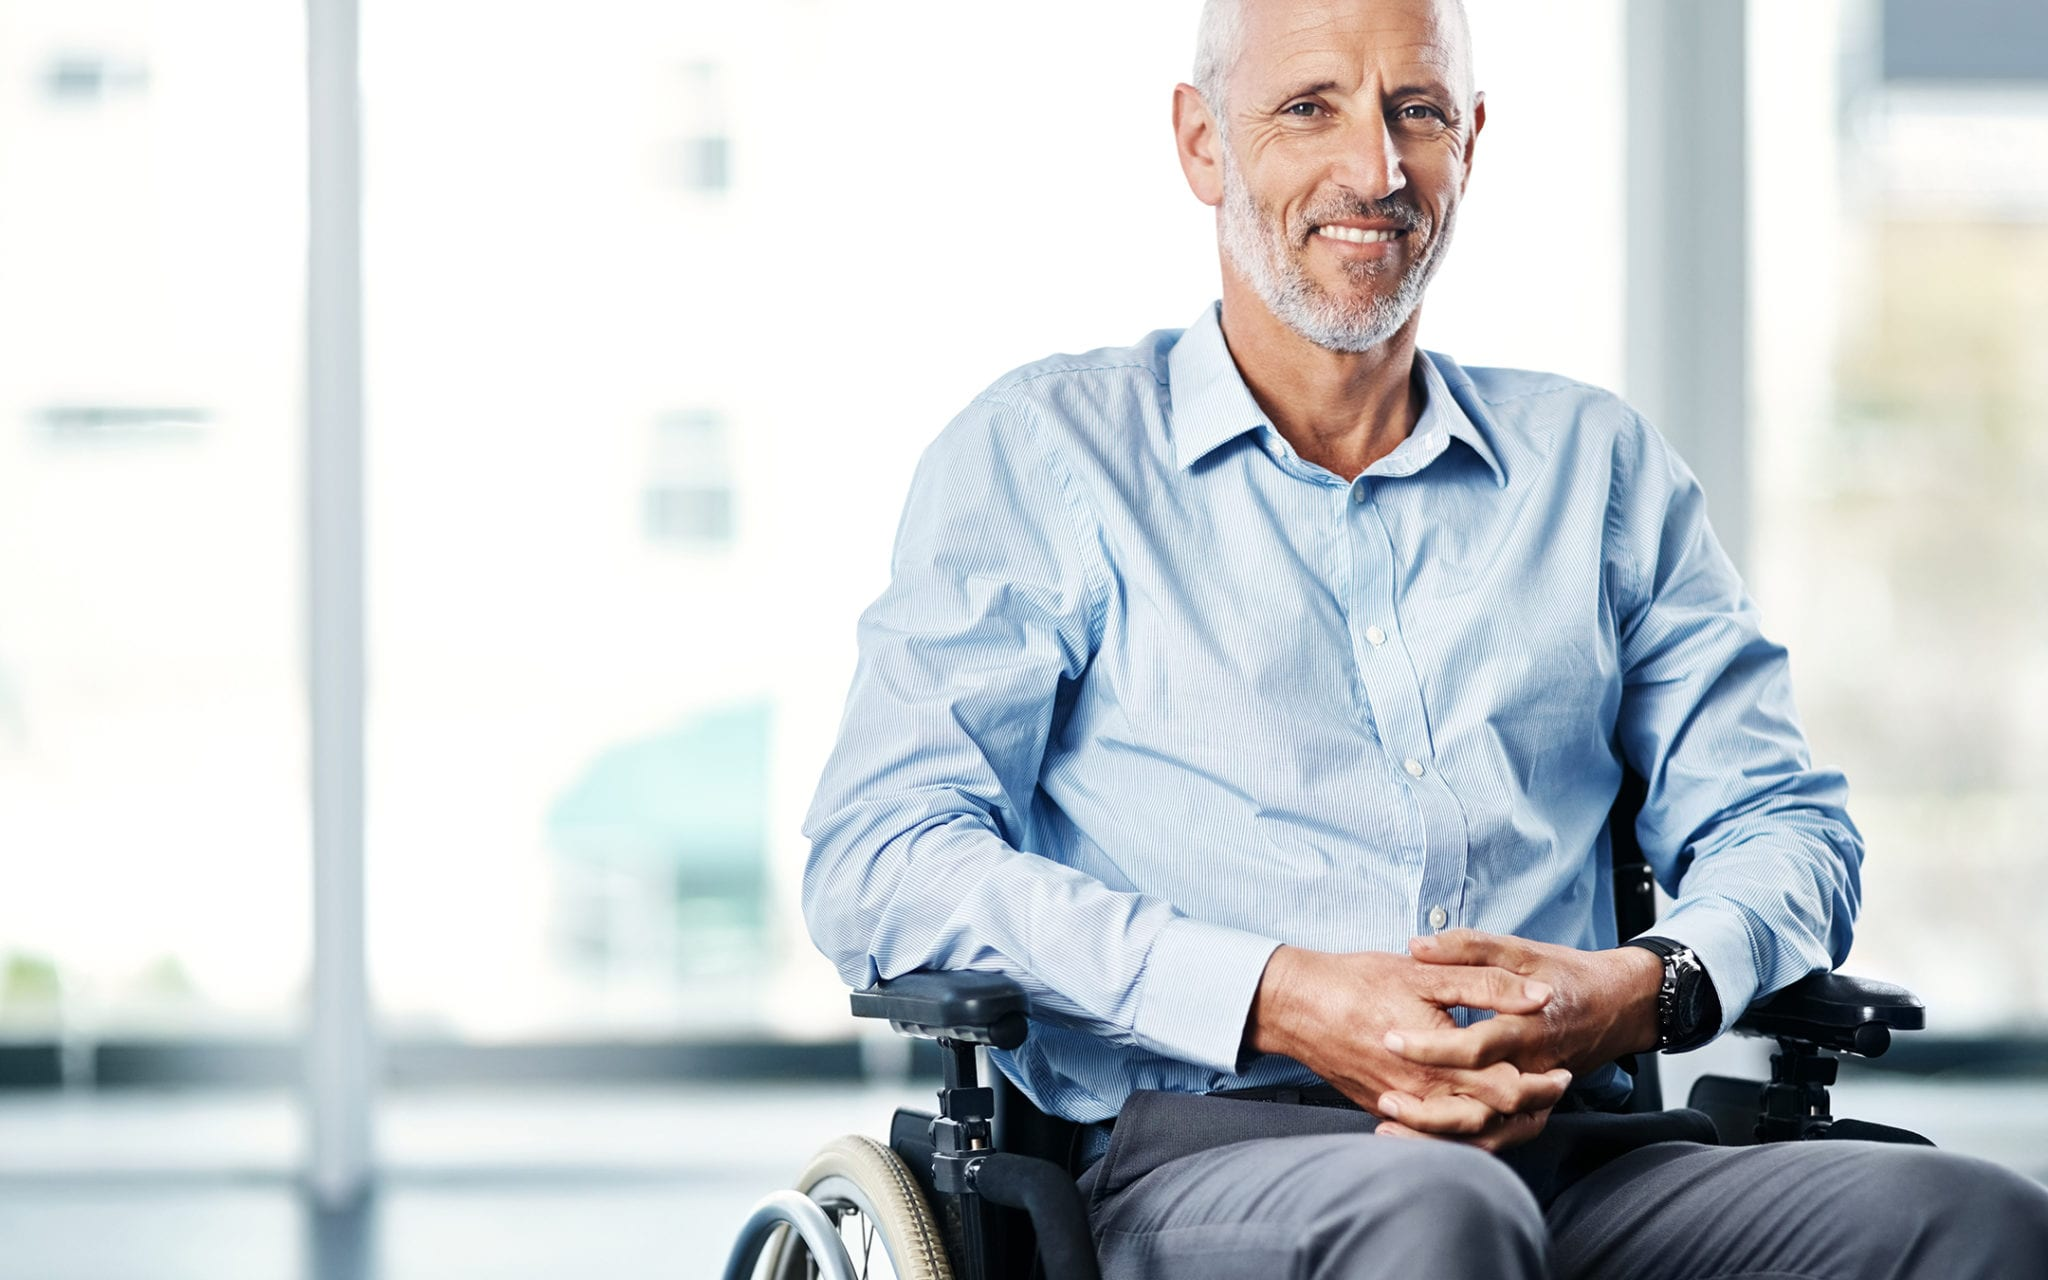 Older patient in wheelchair who may have social determinants of health to be addressed with patient engagement